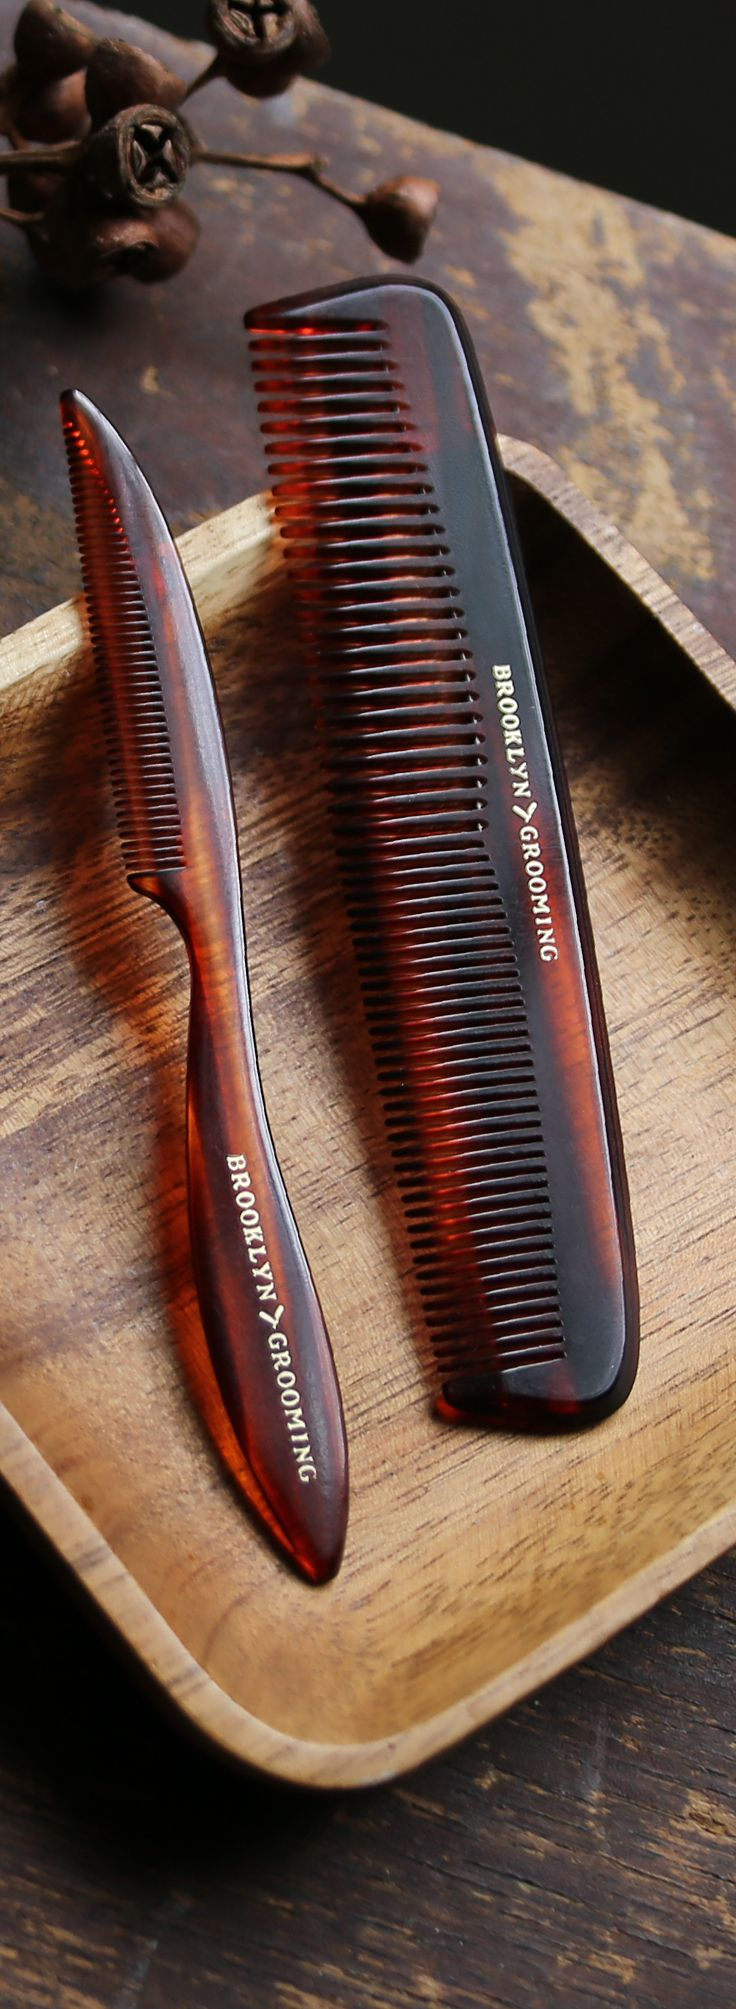 Introducing our limited edition custom engraved mustache and beard comb. An iconic grooming accessory and the perfect gift for beard and mustache lovers! Comb features our Brooklyn Grooming logo in go